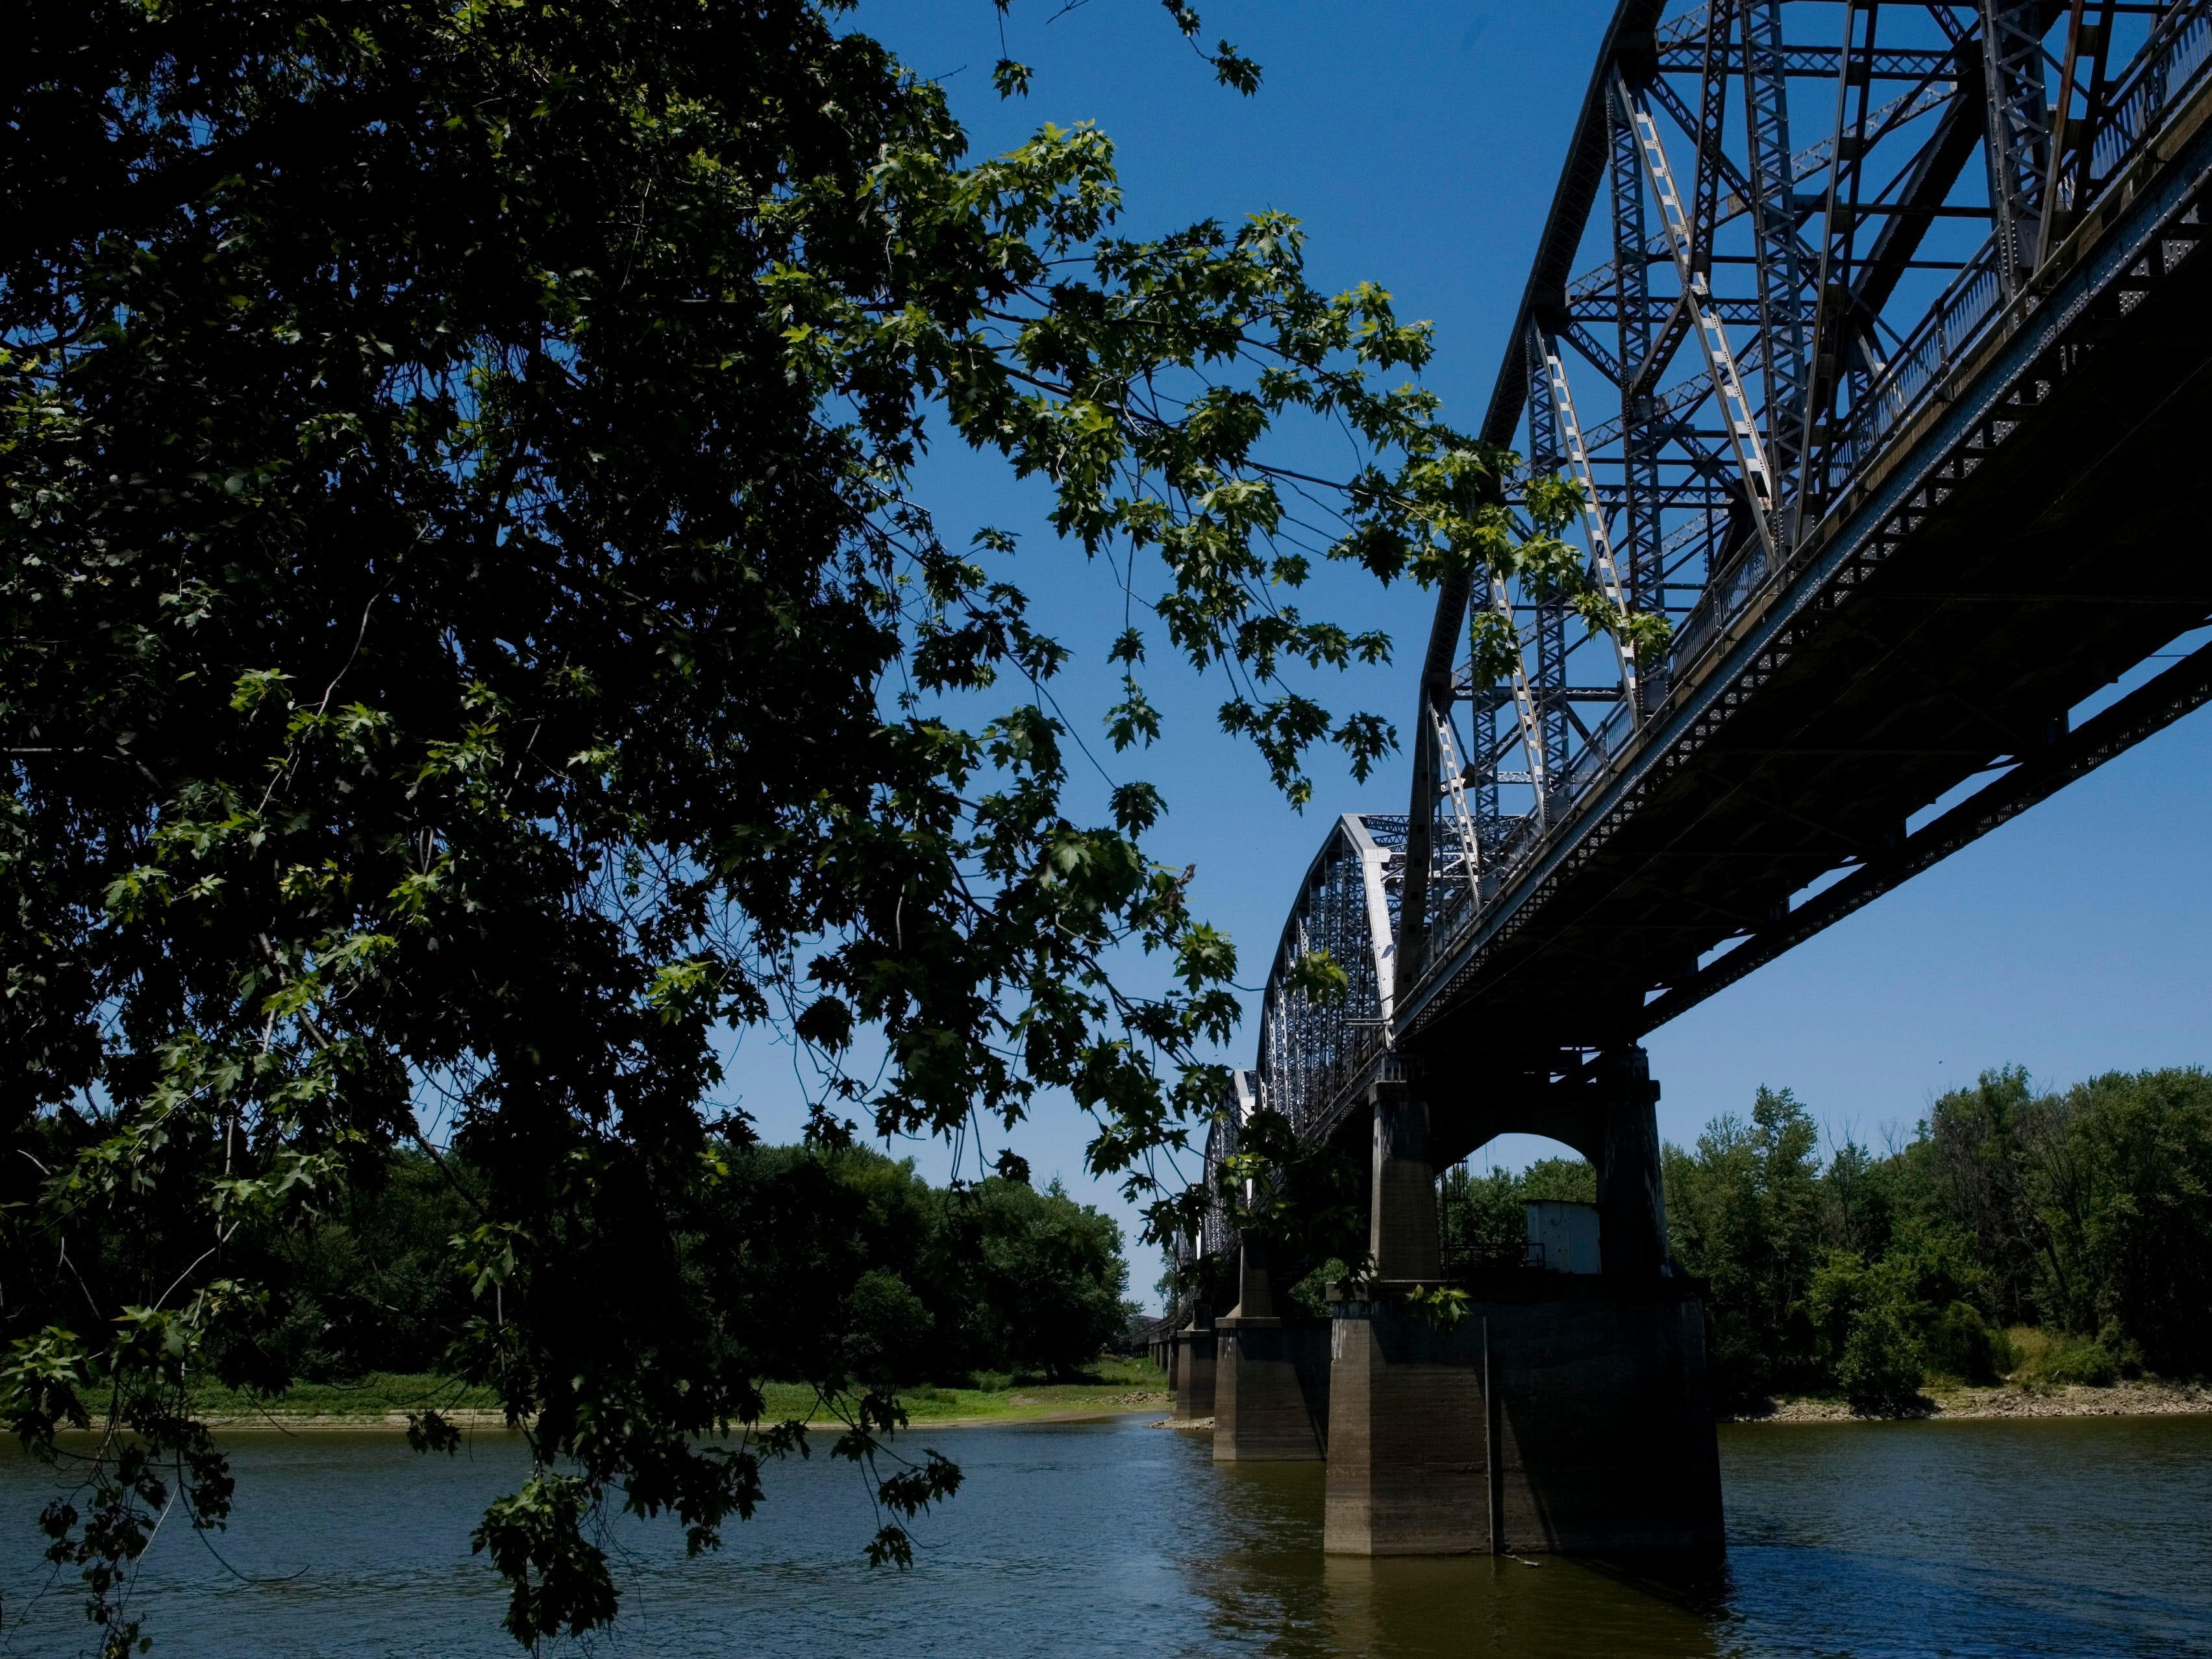 Shut down in May of this year, the Harmony Way Bridge which links New Harmony, Ind., with White County, Ill., as it crosses the Wabash River only serves nesting swallows, wasps and pigeons these days.